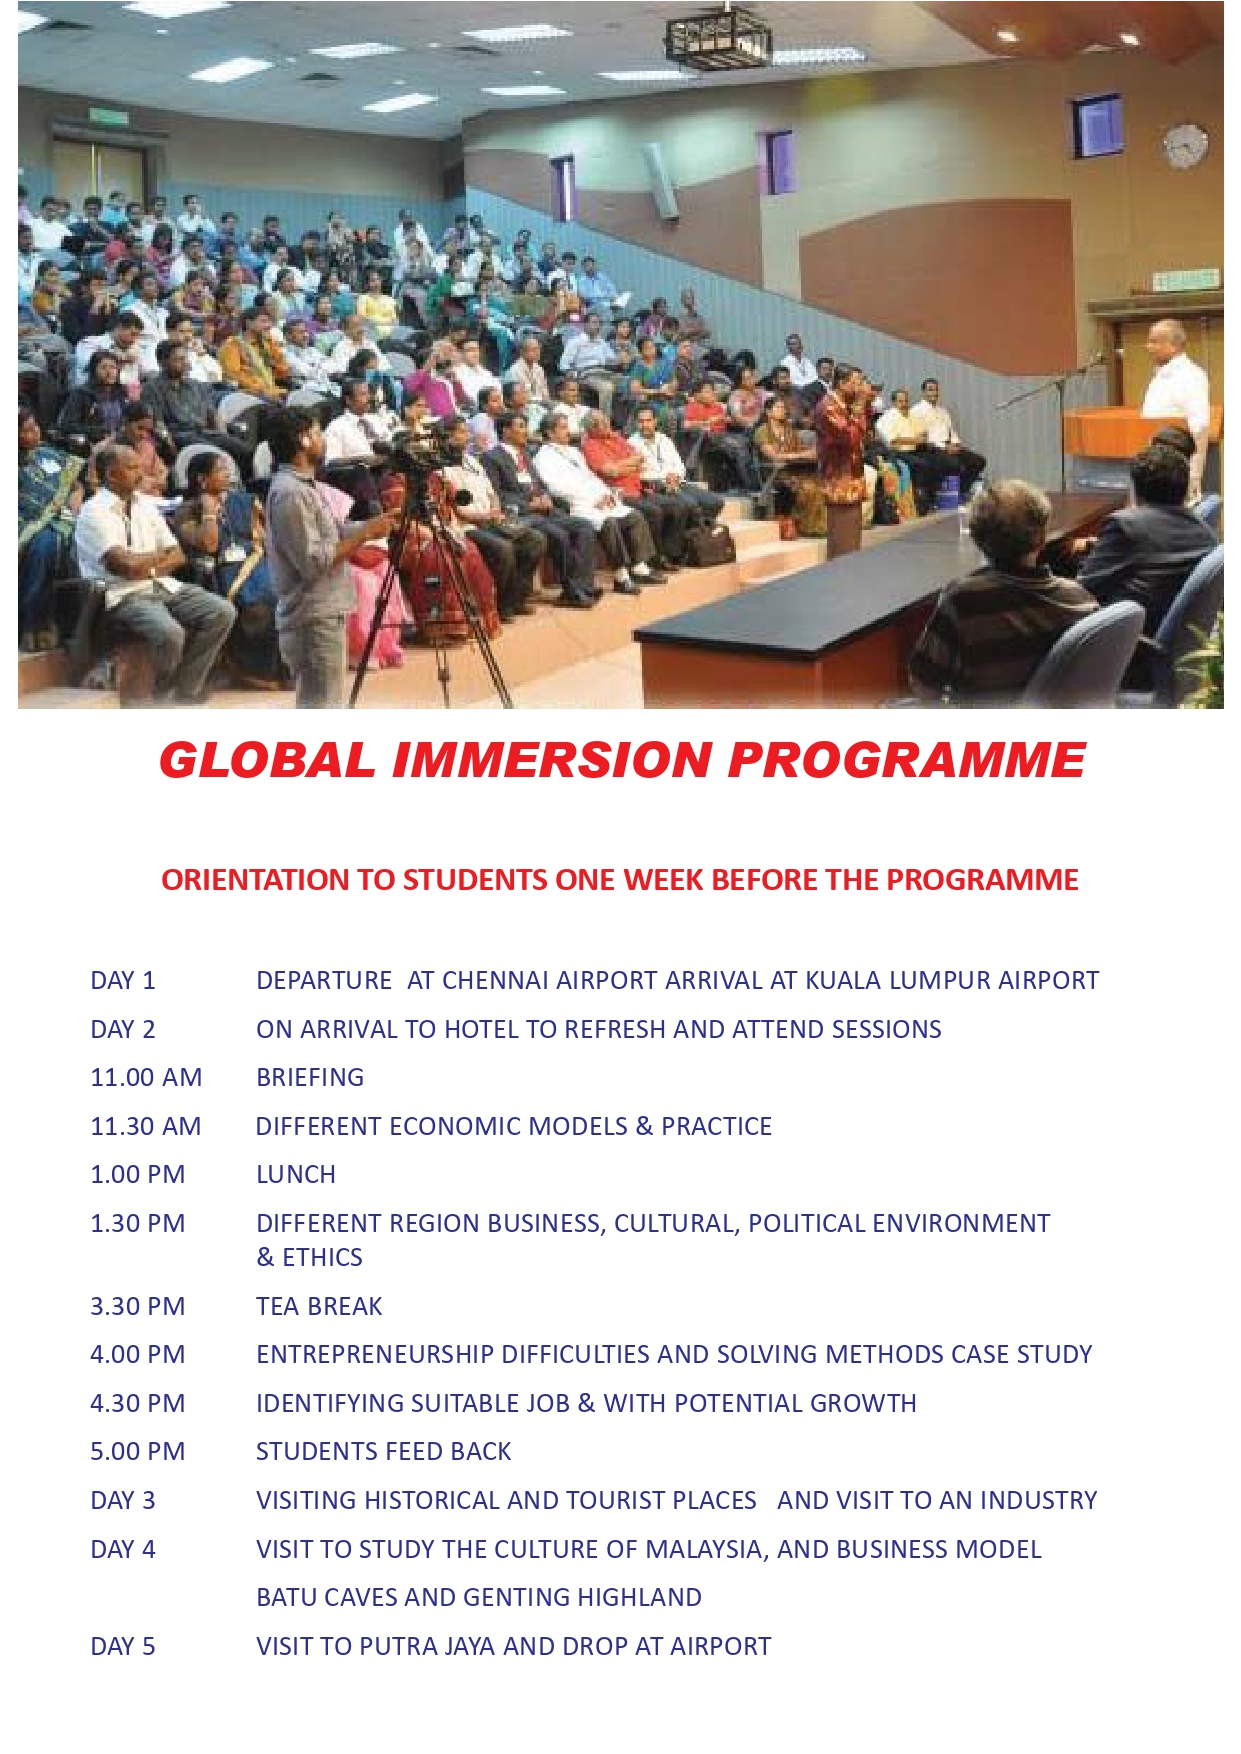 GLOBAL IMMERSION PROGRAMME